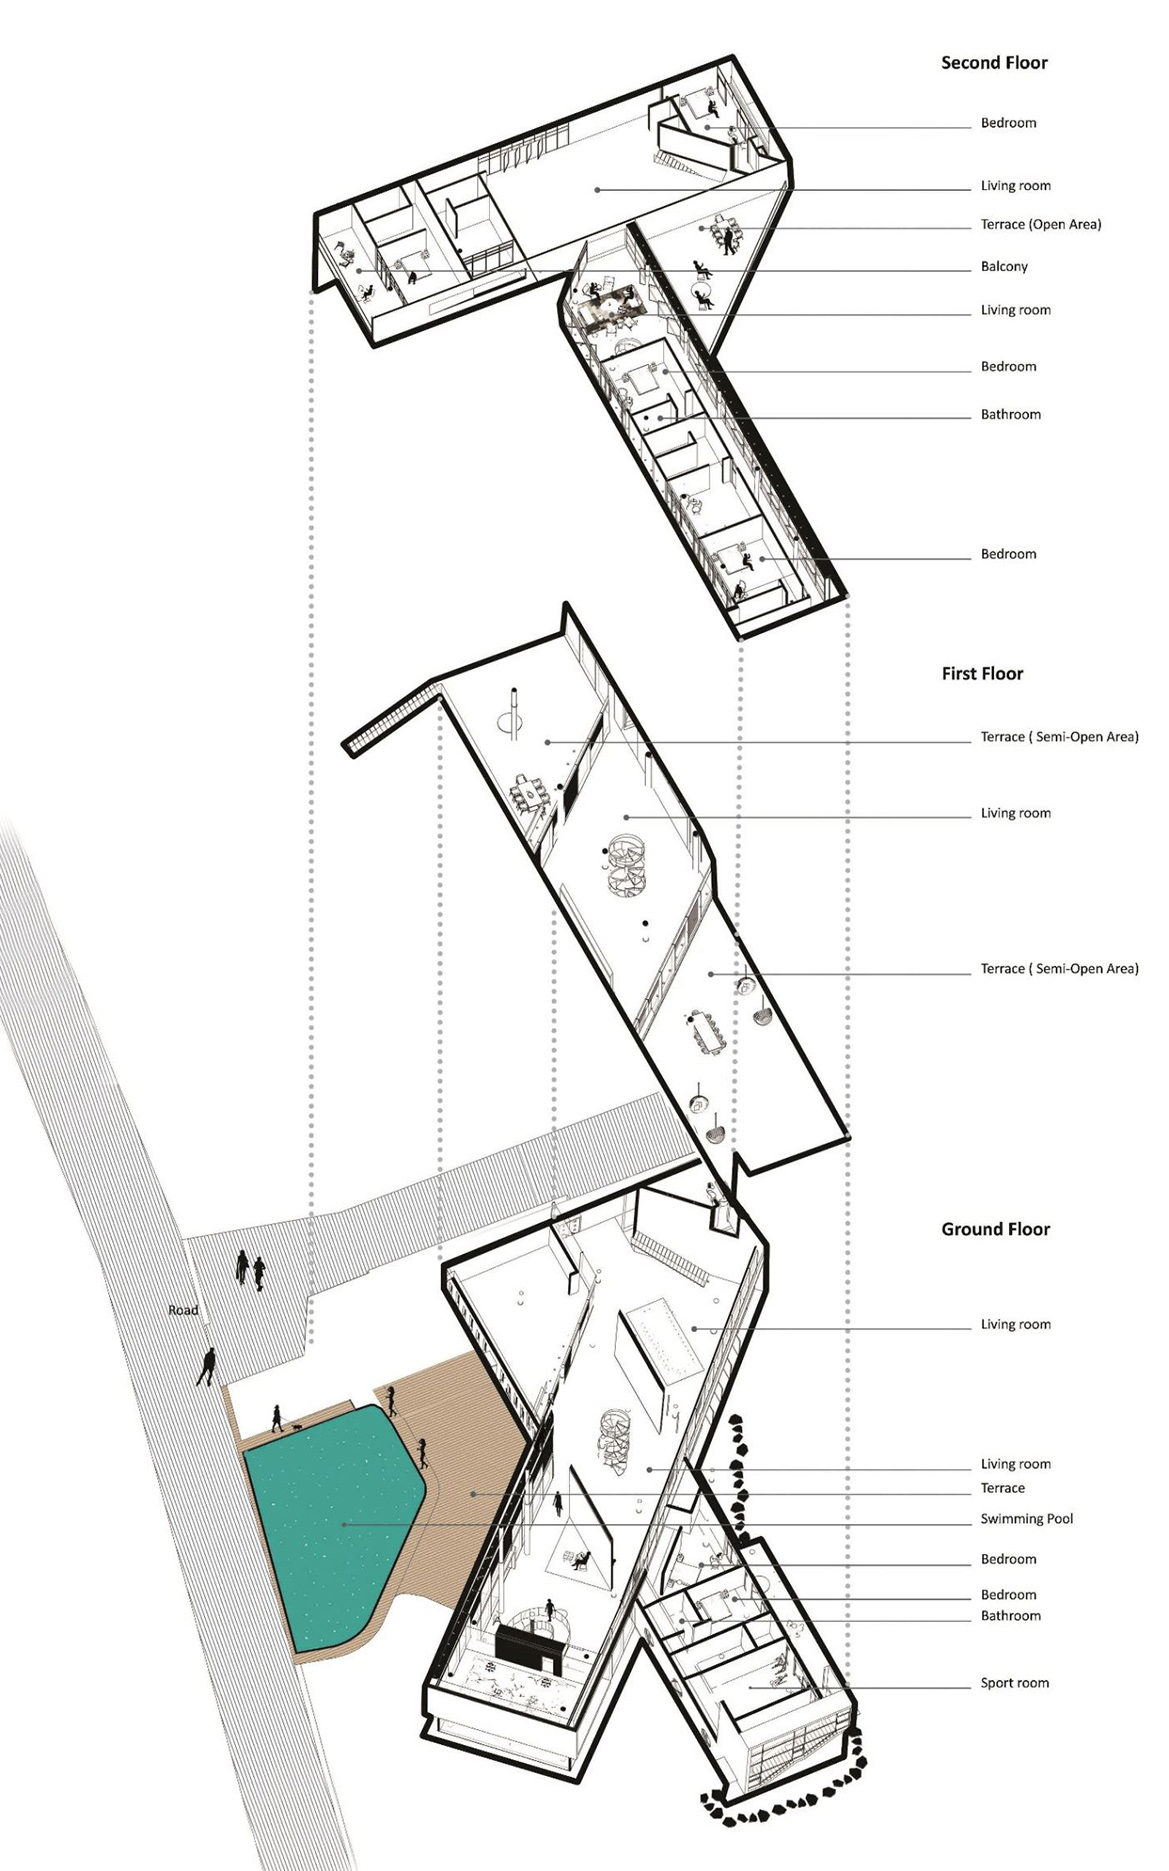 Exploded Plan Perspective Diagram Wall Corporation}